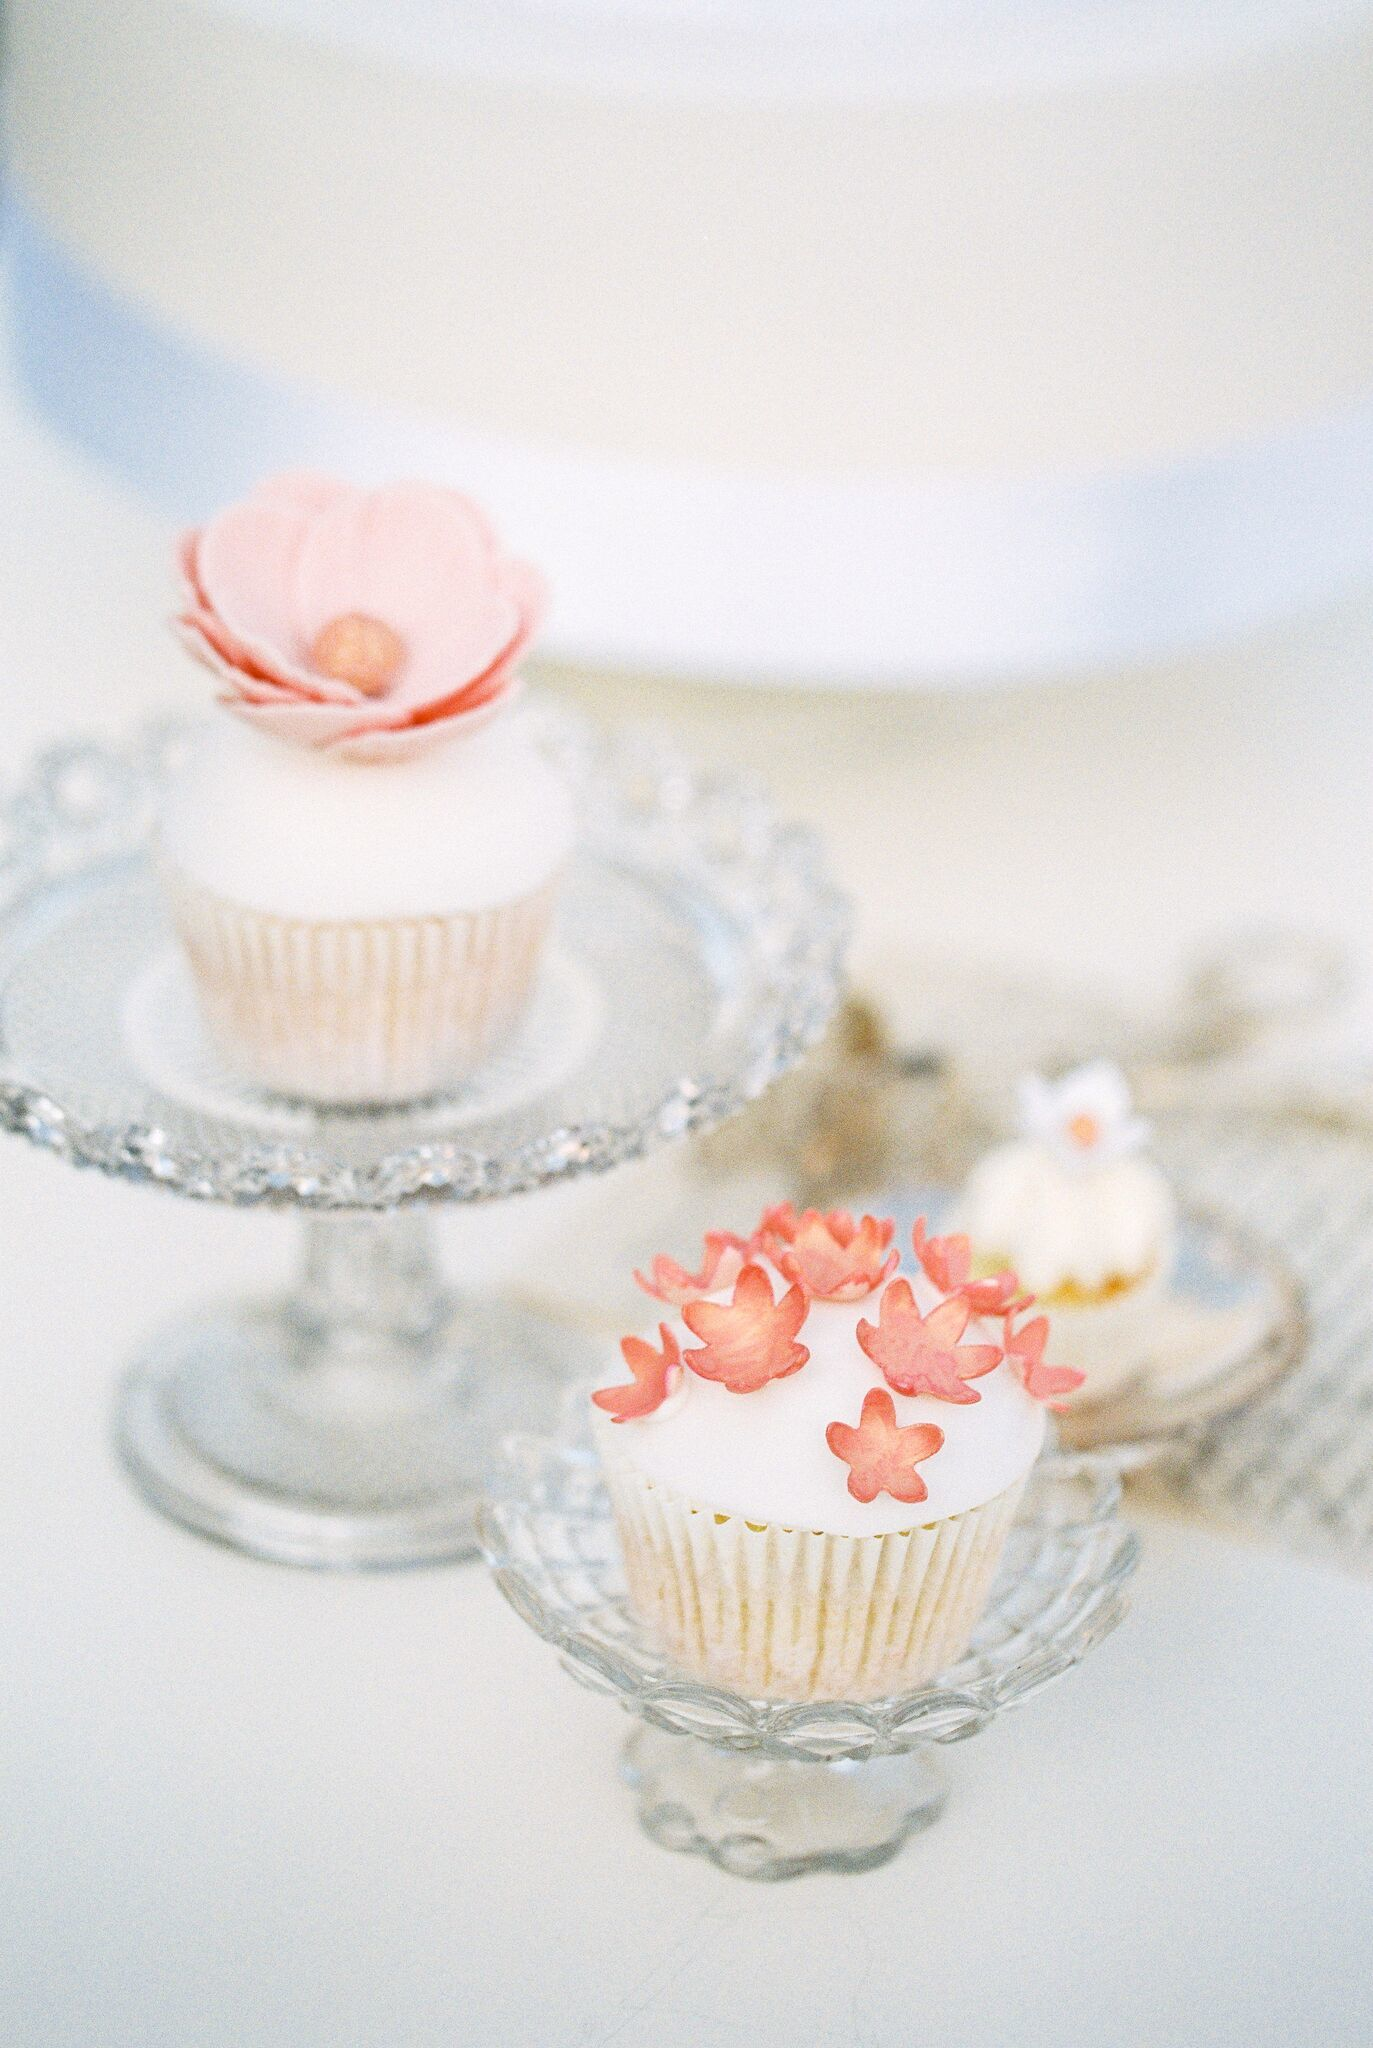 Petite fours with peach  sugar flowers